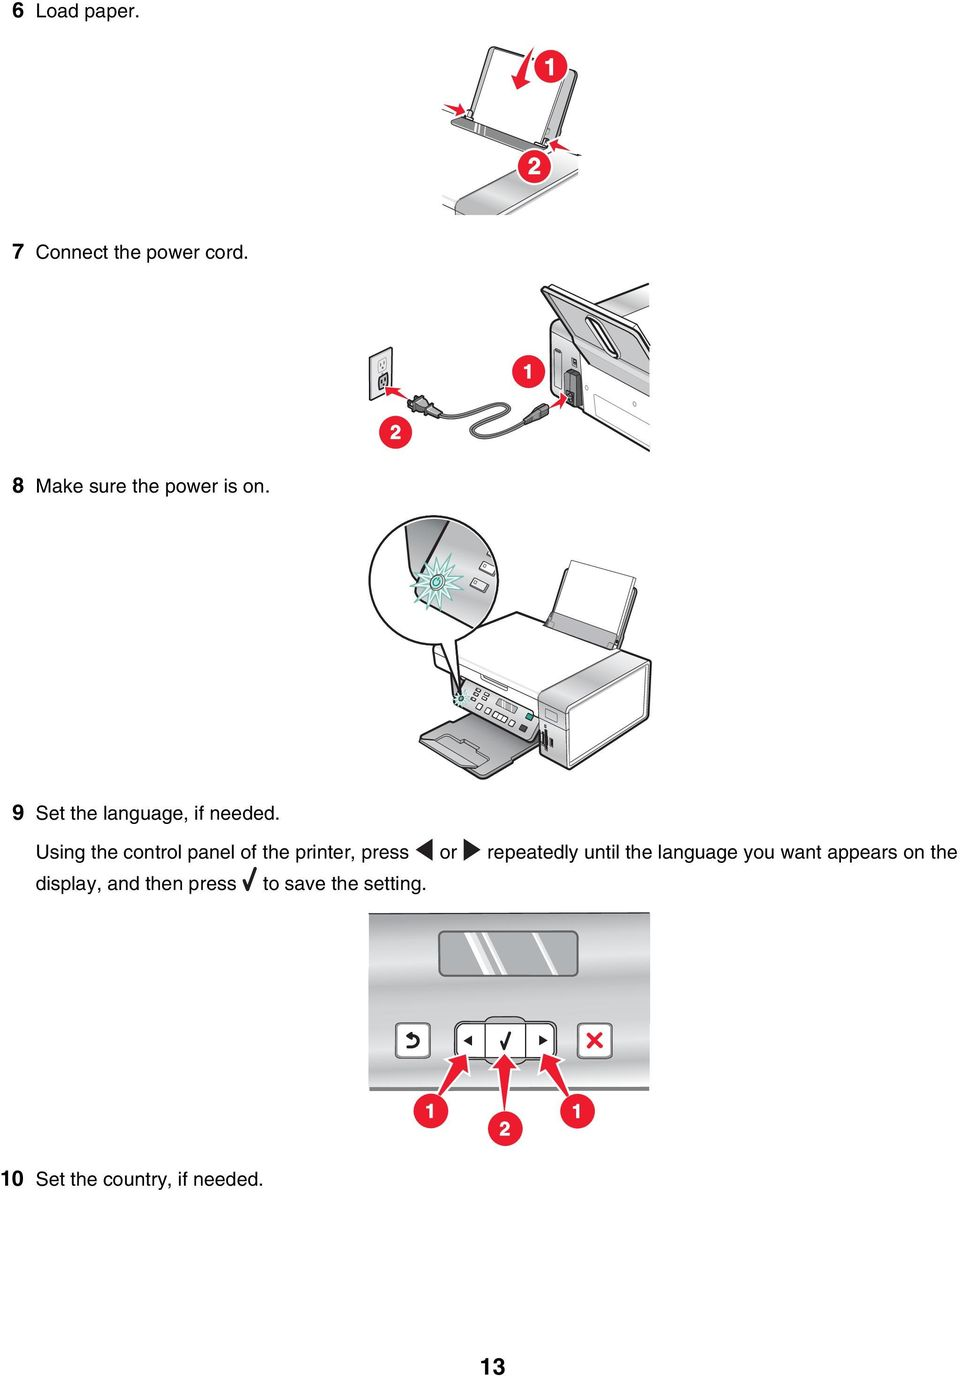 Using the control panel of the printer, press or repeatedly until the